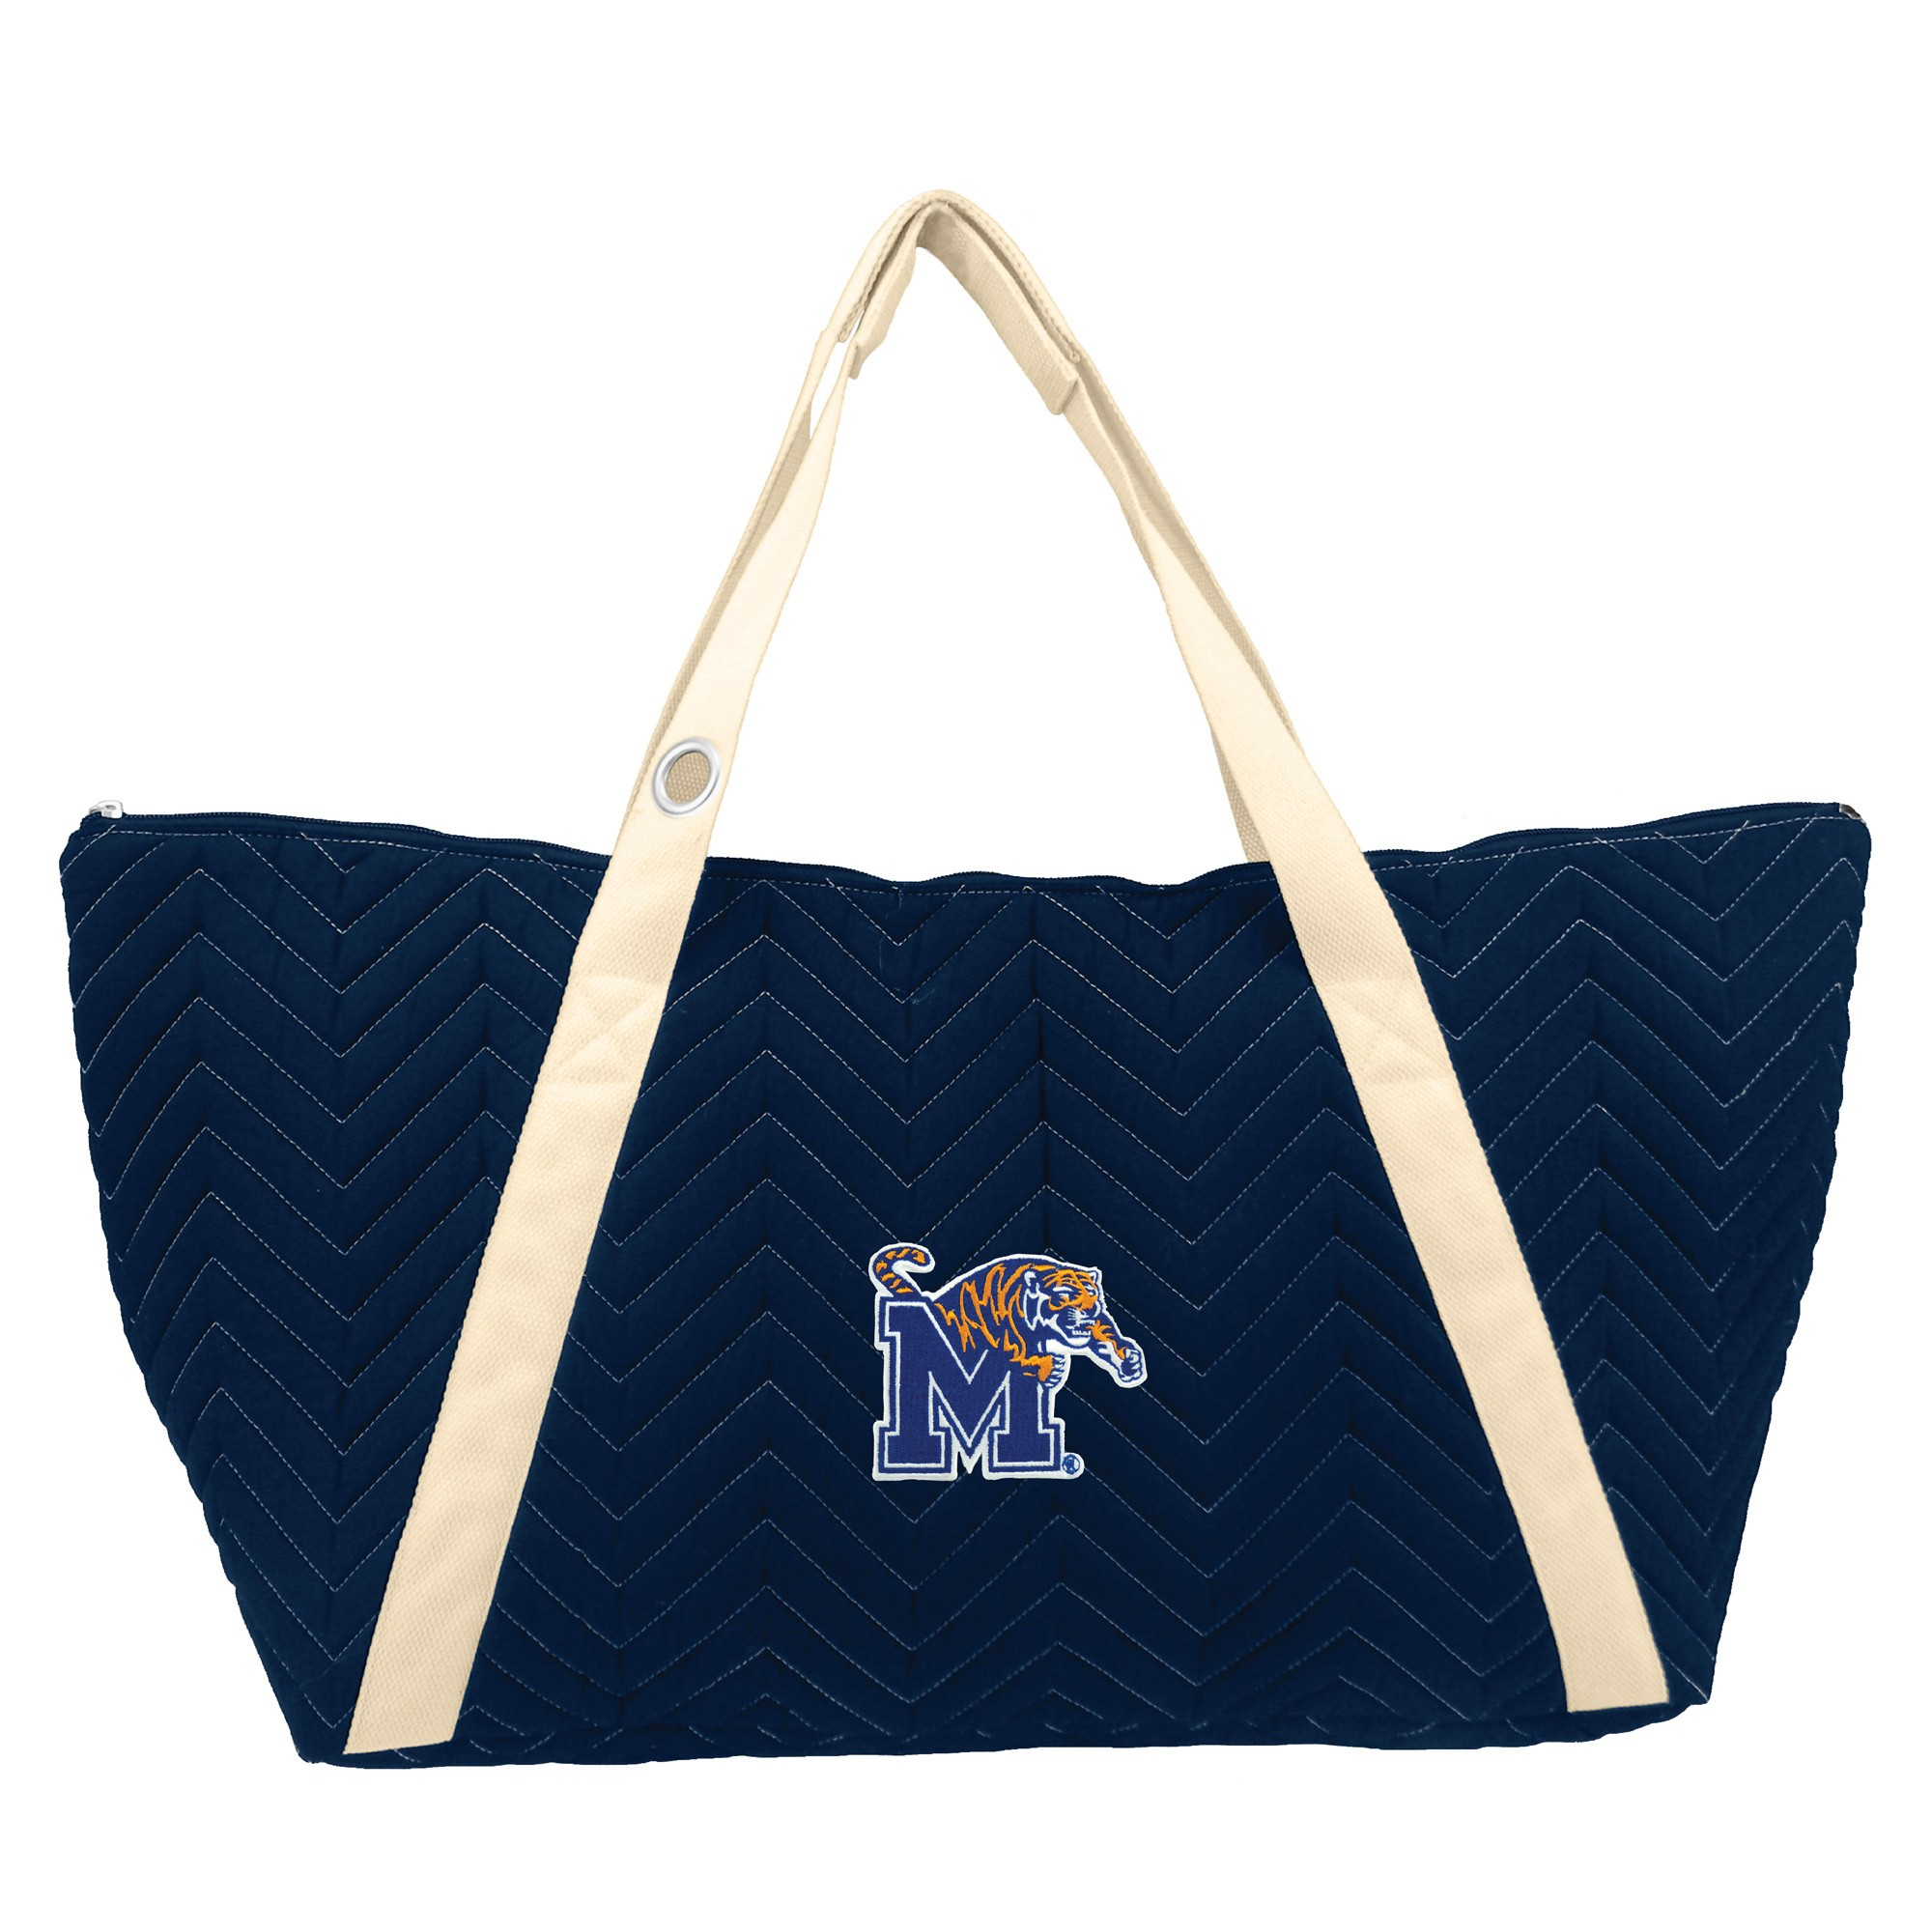 Ncaa memphis tigers chev stitch weekender memphis tigers